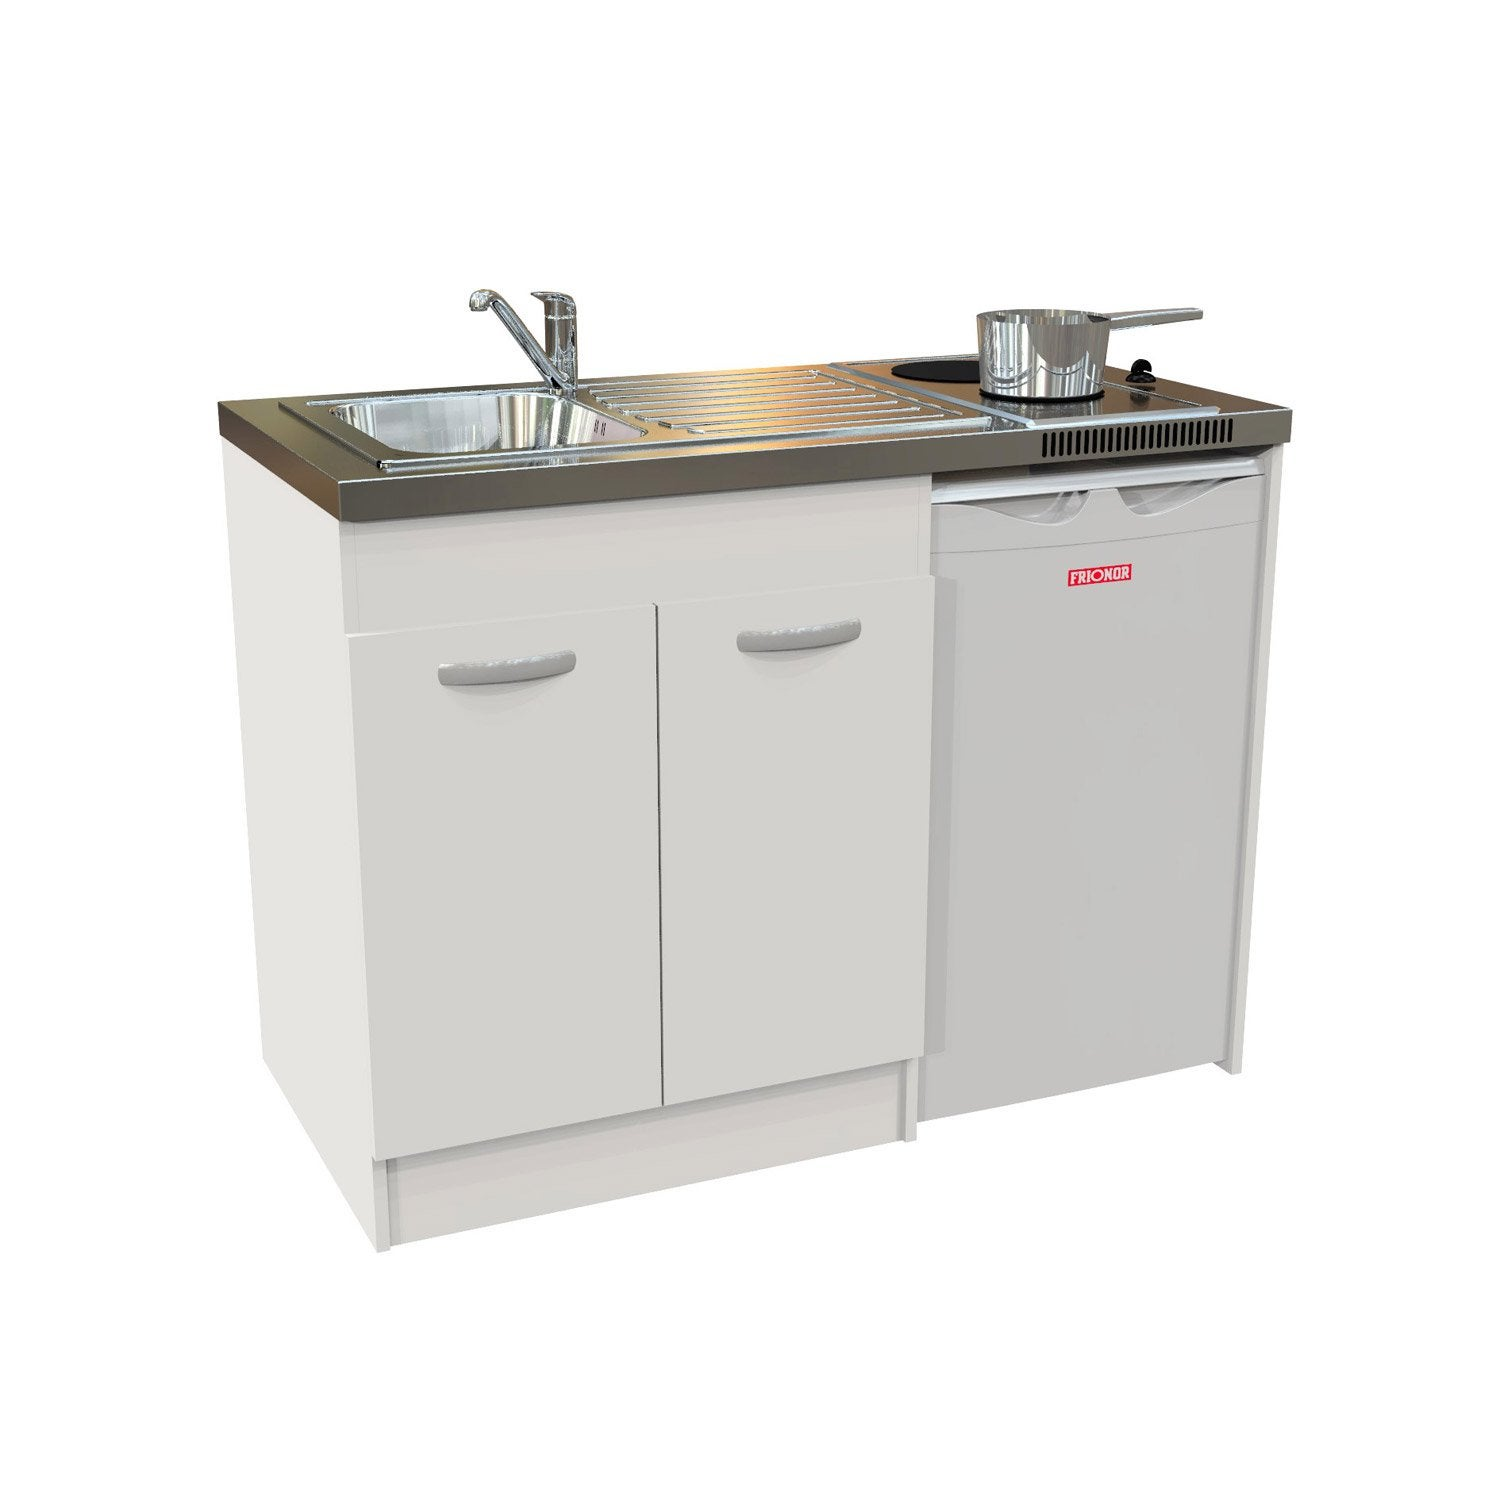 Kitchenette electrique blanc spring x x cm leroy merlin - Kitchenette pour studio ...